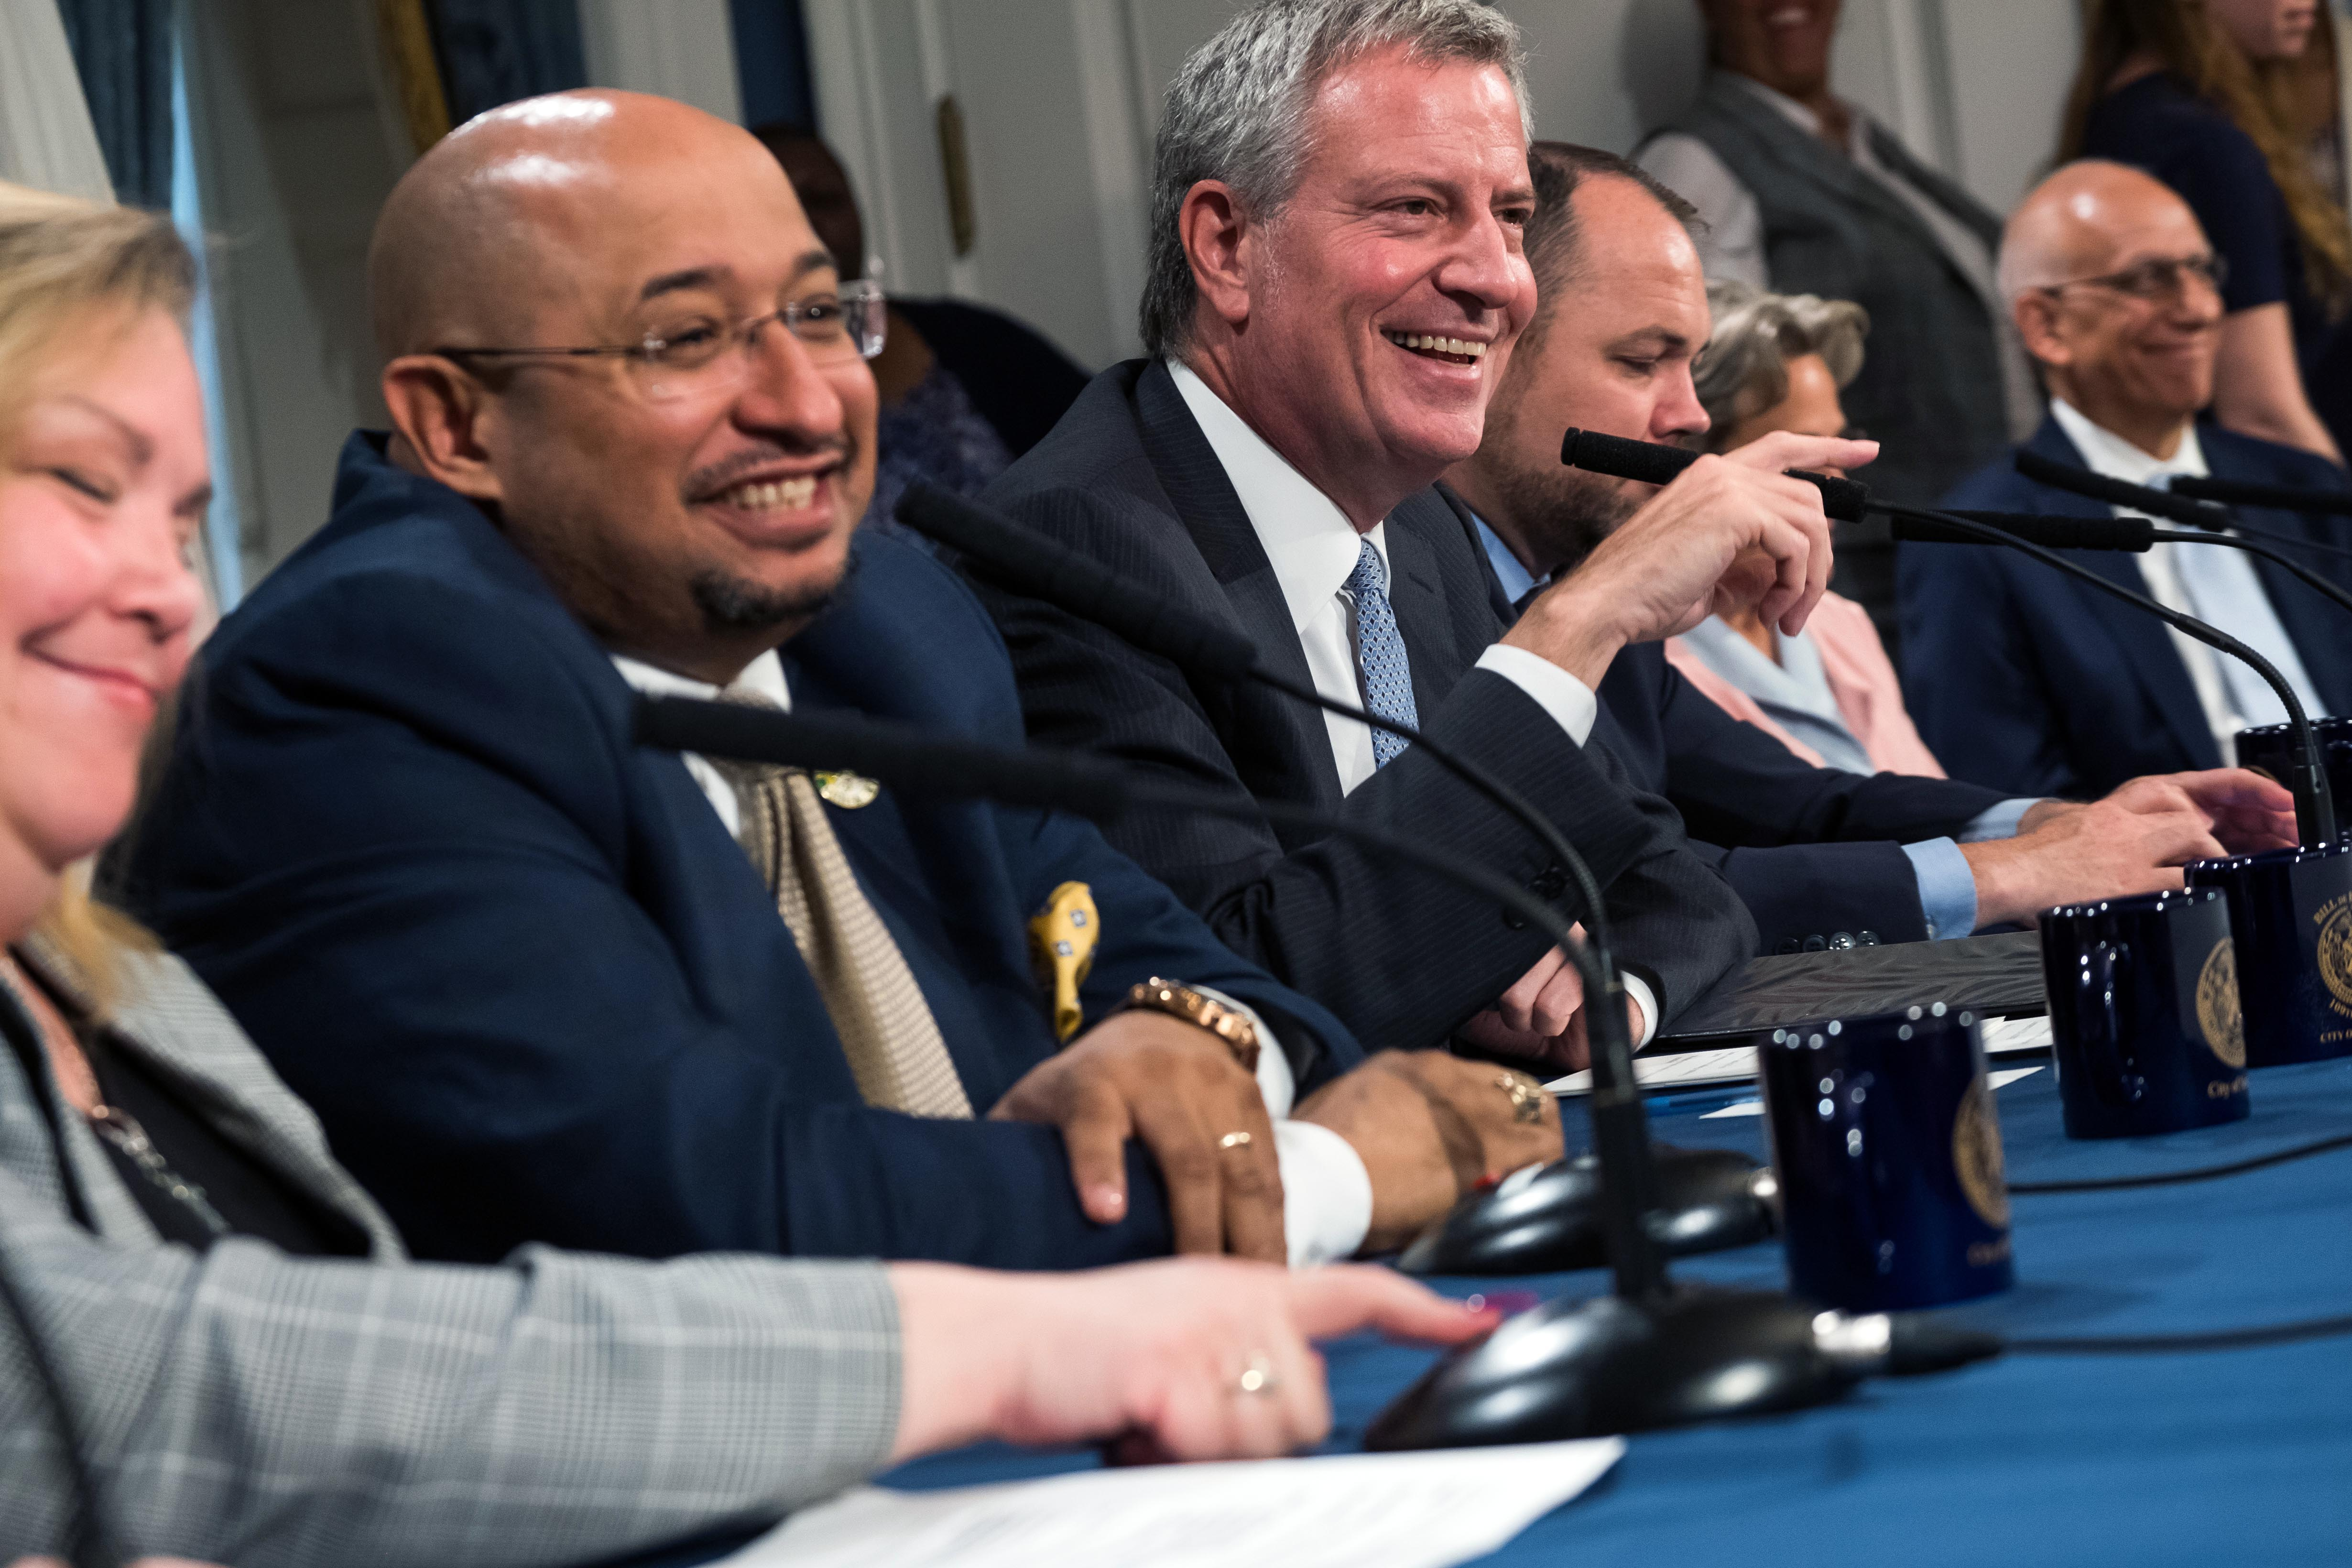 Labor leaders and Mayor Bill de Blasio on Tuesday announced a deal to boost pay for some pre-K teachers.